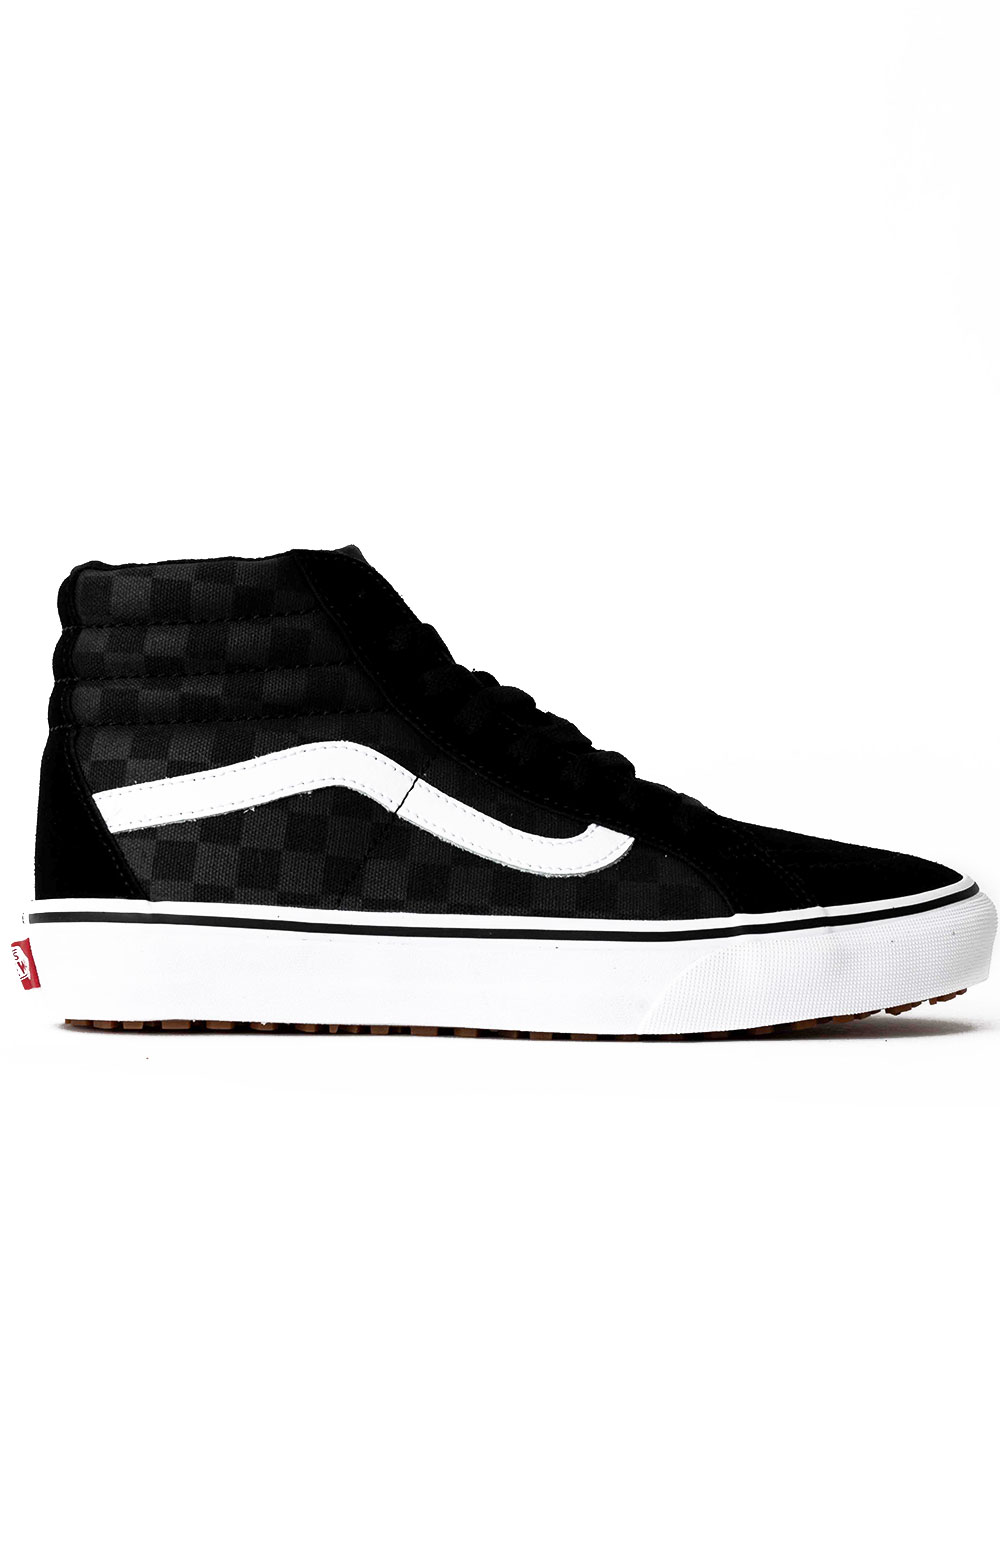 (MV5V7X) Made For The Makers Sk8-Hi Reissue UC Shoe - Black/Checkerboard